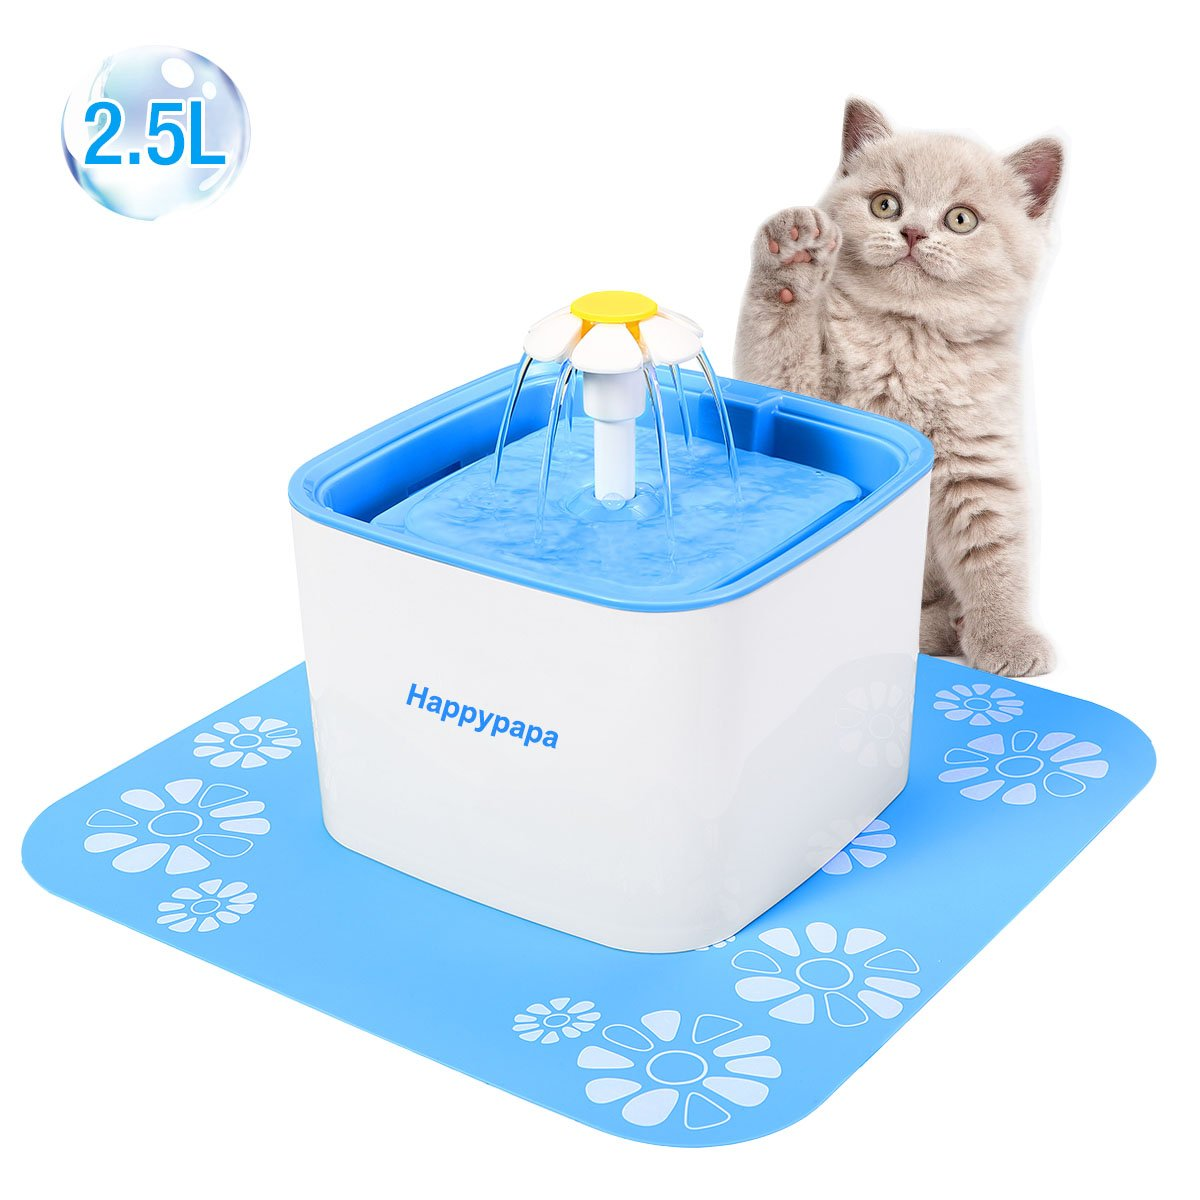 [Newest 2018 Upgraded] Cat Fountain 2.5L Healthy and Hygienic Pet Fountain Ultra Quiet Cat and Dog Flower Fountain Suit for Cats Dogs Birds and Small Animals (Blue)